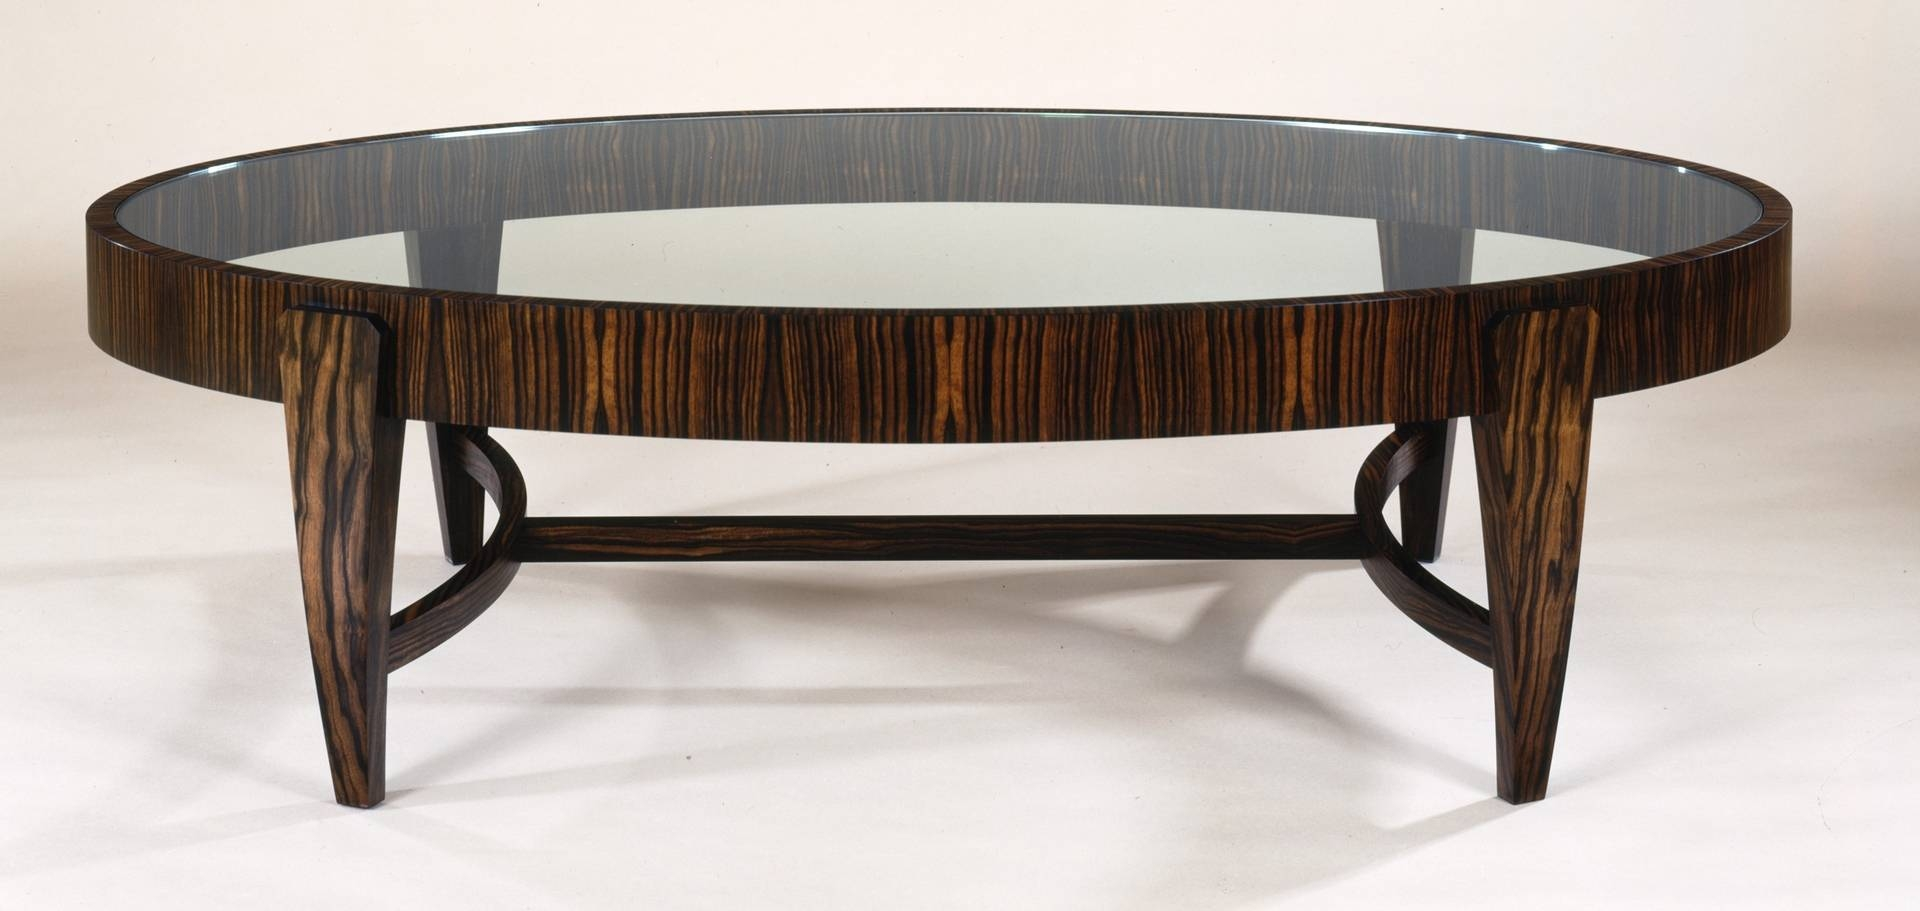 Oval Glass Top Coffee Table With Wooden Legs And Laminate Frame with regard to Oval Mirrored Coffee Tables (Image 22 of 30)